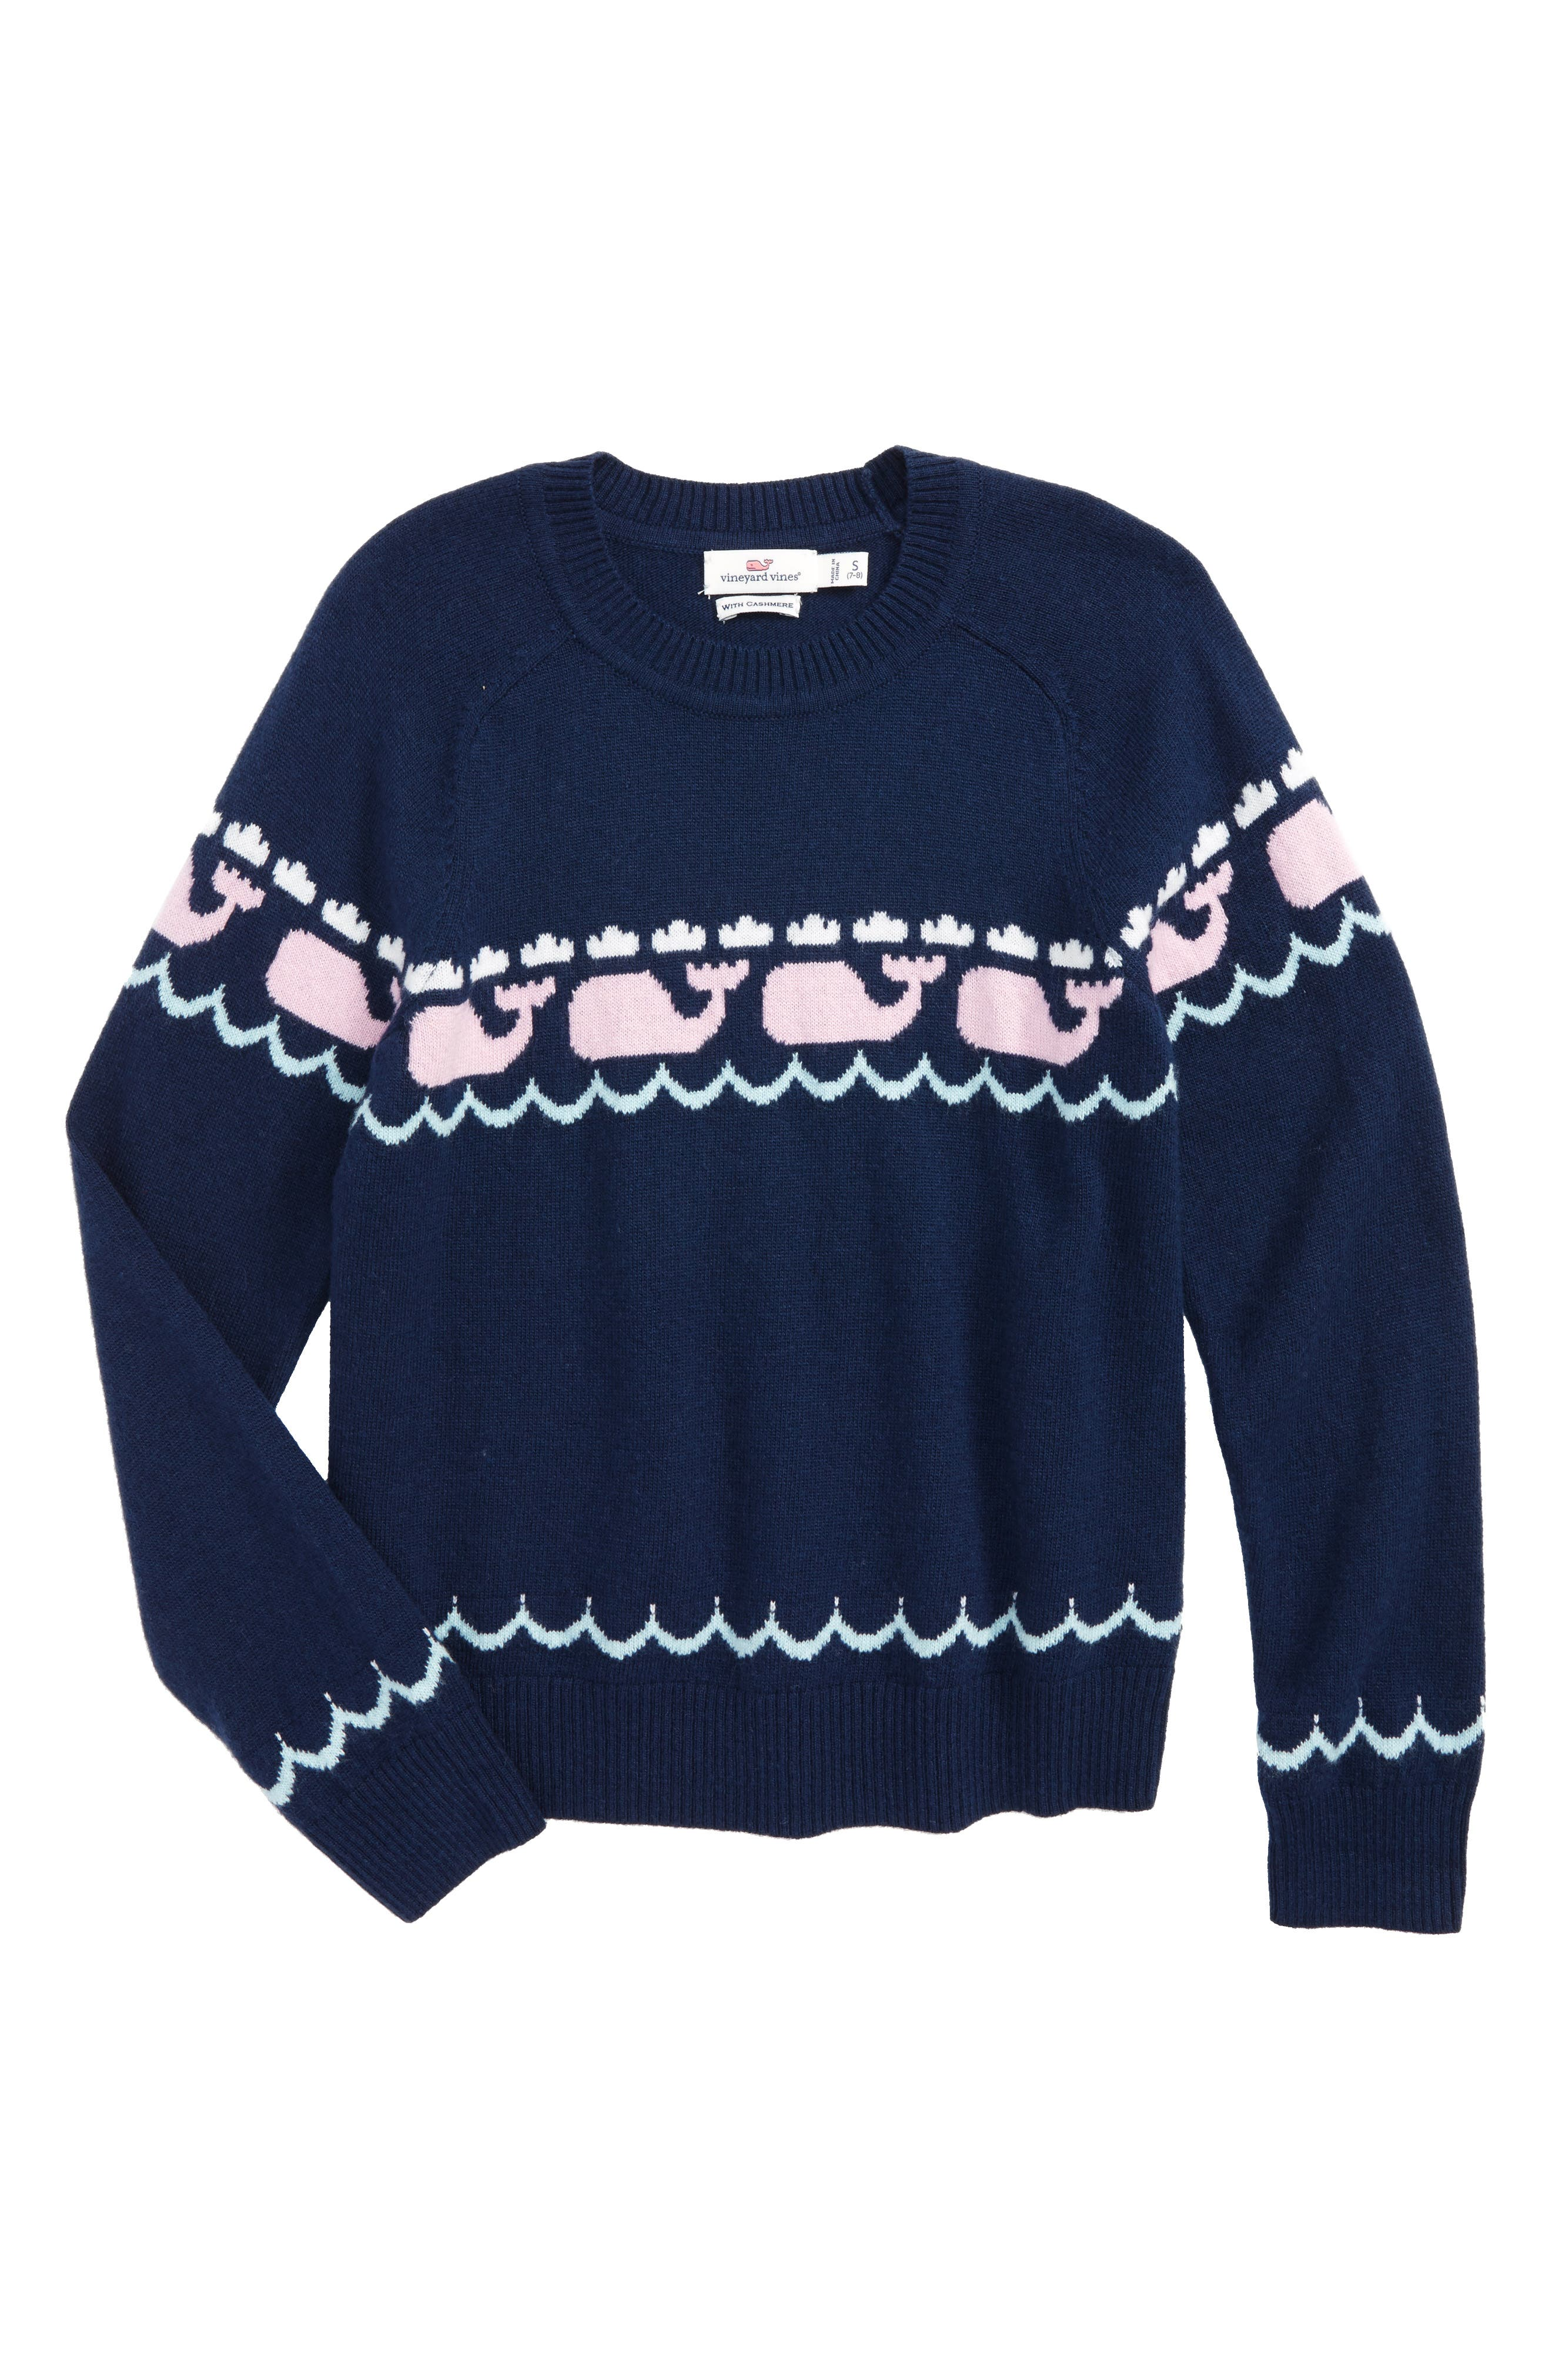 Alternate Image 1 Selected - vineyard vines Whale Intarsia Sweater (Little Girls & Big Girls)